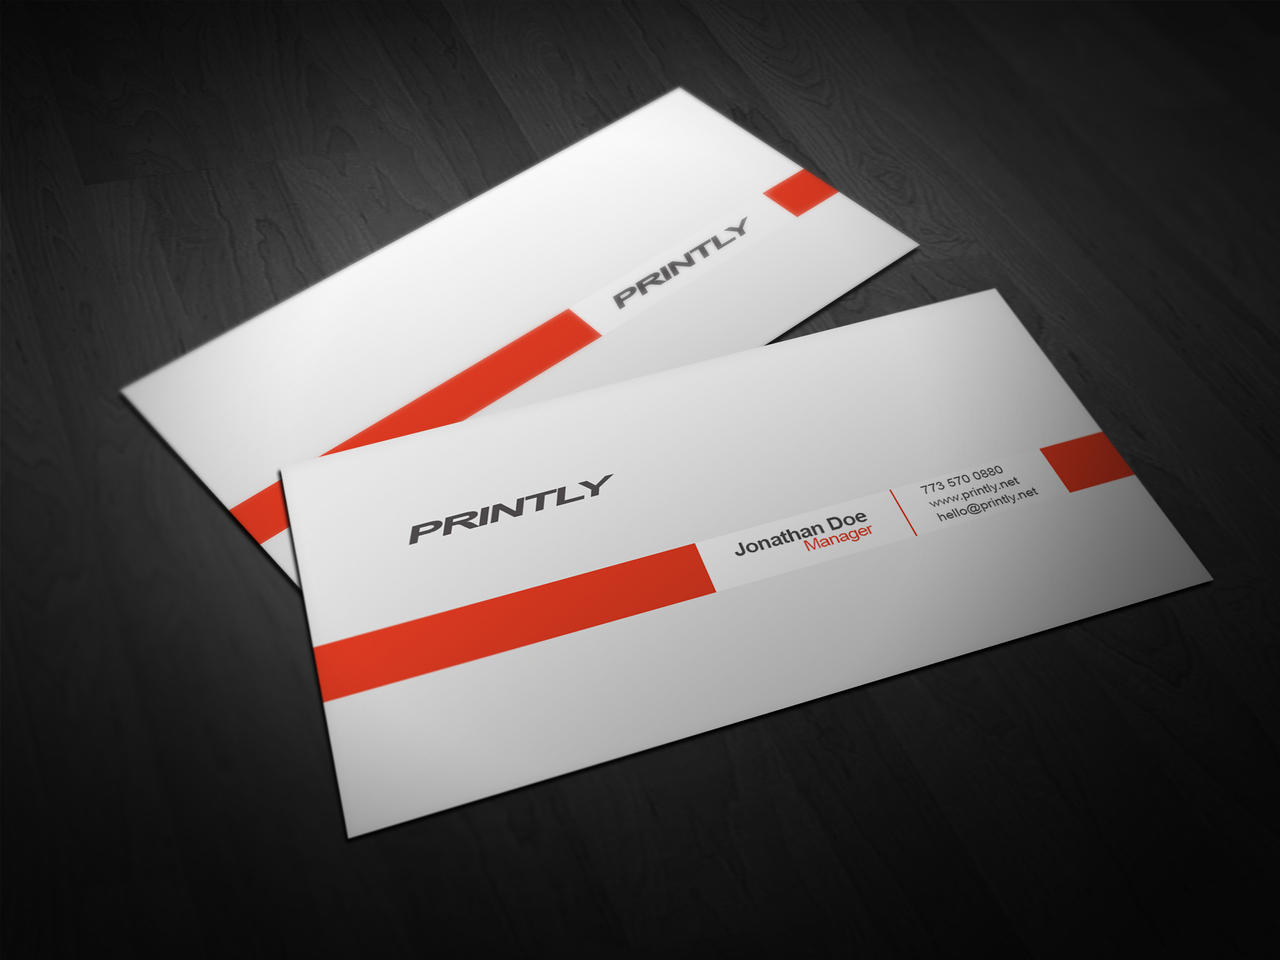 Free printly business card psd template by kjarmo on deviantart free printly business card psd template by kjarmo wajeb Image collections